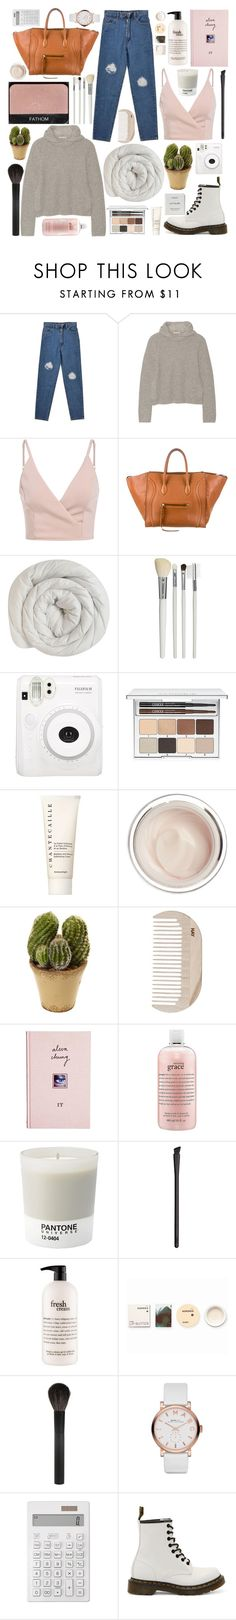 """""""Untitled #464"""" by inkcoherent ❤ liked on Polyvore featuring Michael Kors, CÉLINE, NARS Cosmetics, Cath Kidston, Fuji, Clinique, Chantecaille, Dr. Sebagh, Nearly Natural and HAY"""